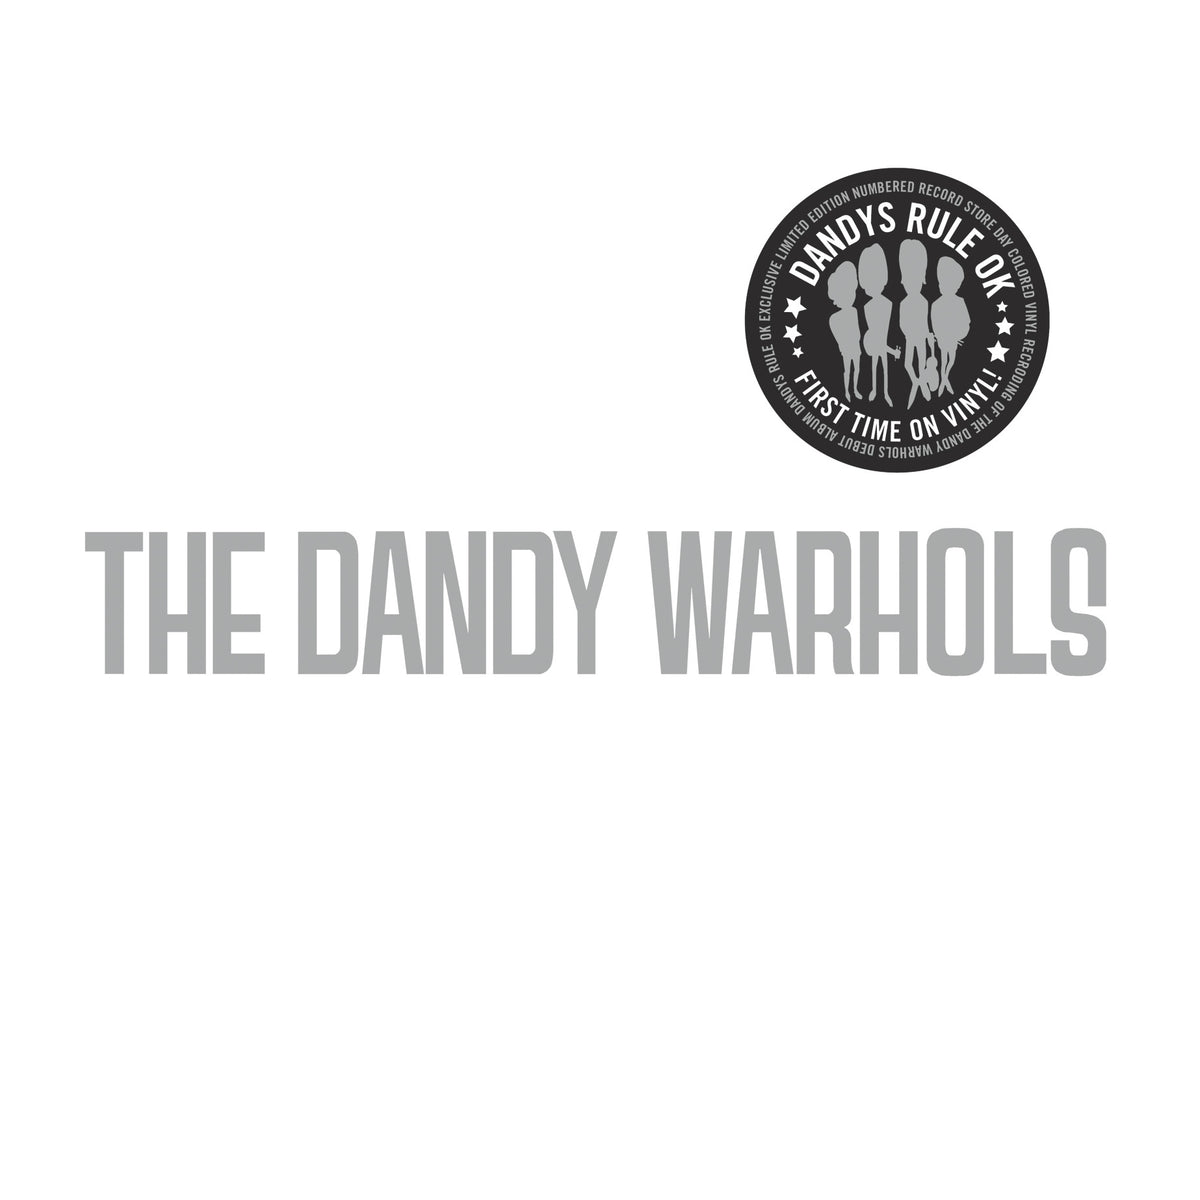 Dandy Warhols: Dandys Rule OK (Colored Vinyl) Vinyl 2LP (Record Store Day)